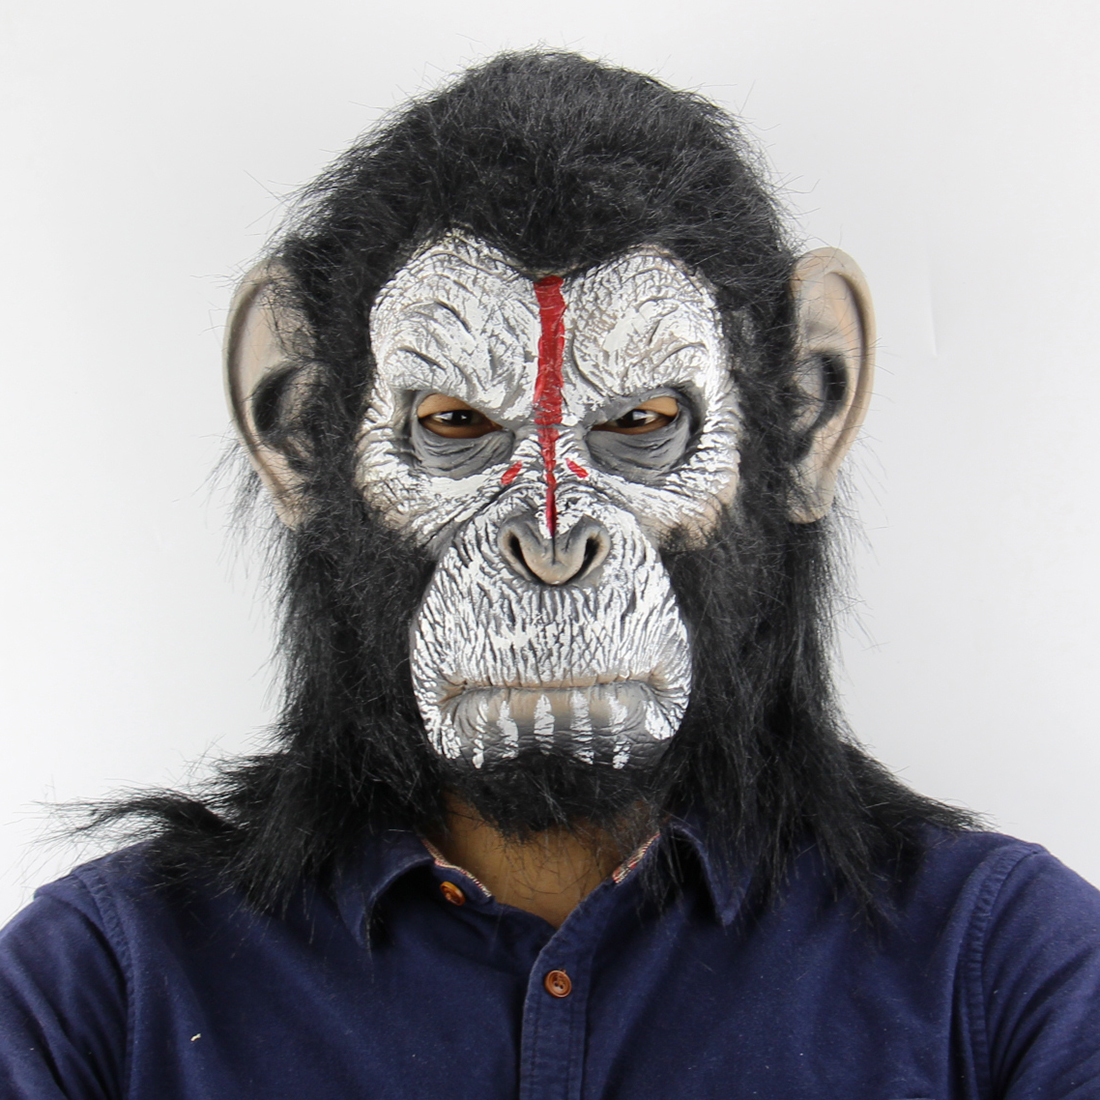 Gorilla Monkey Halloween Masks Adult Full Face Funny Mask Latex Halloween Party Cosplay Costume Masquerade Realistic Masks fishtail braid with hair accessory